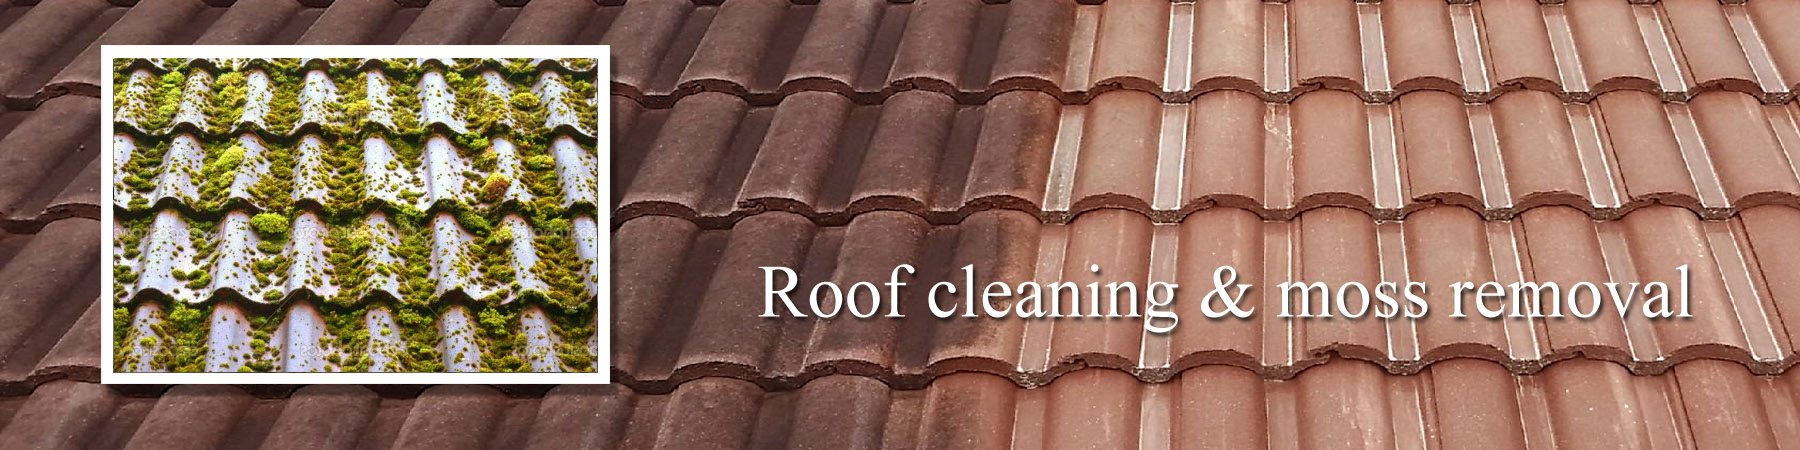 J.R. Roof Cleaning Richmond roof moss removal repairs & coating J R Cleaning